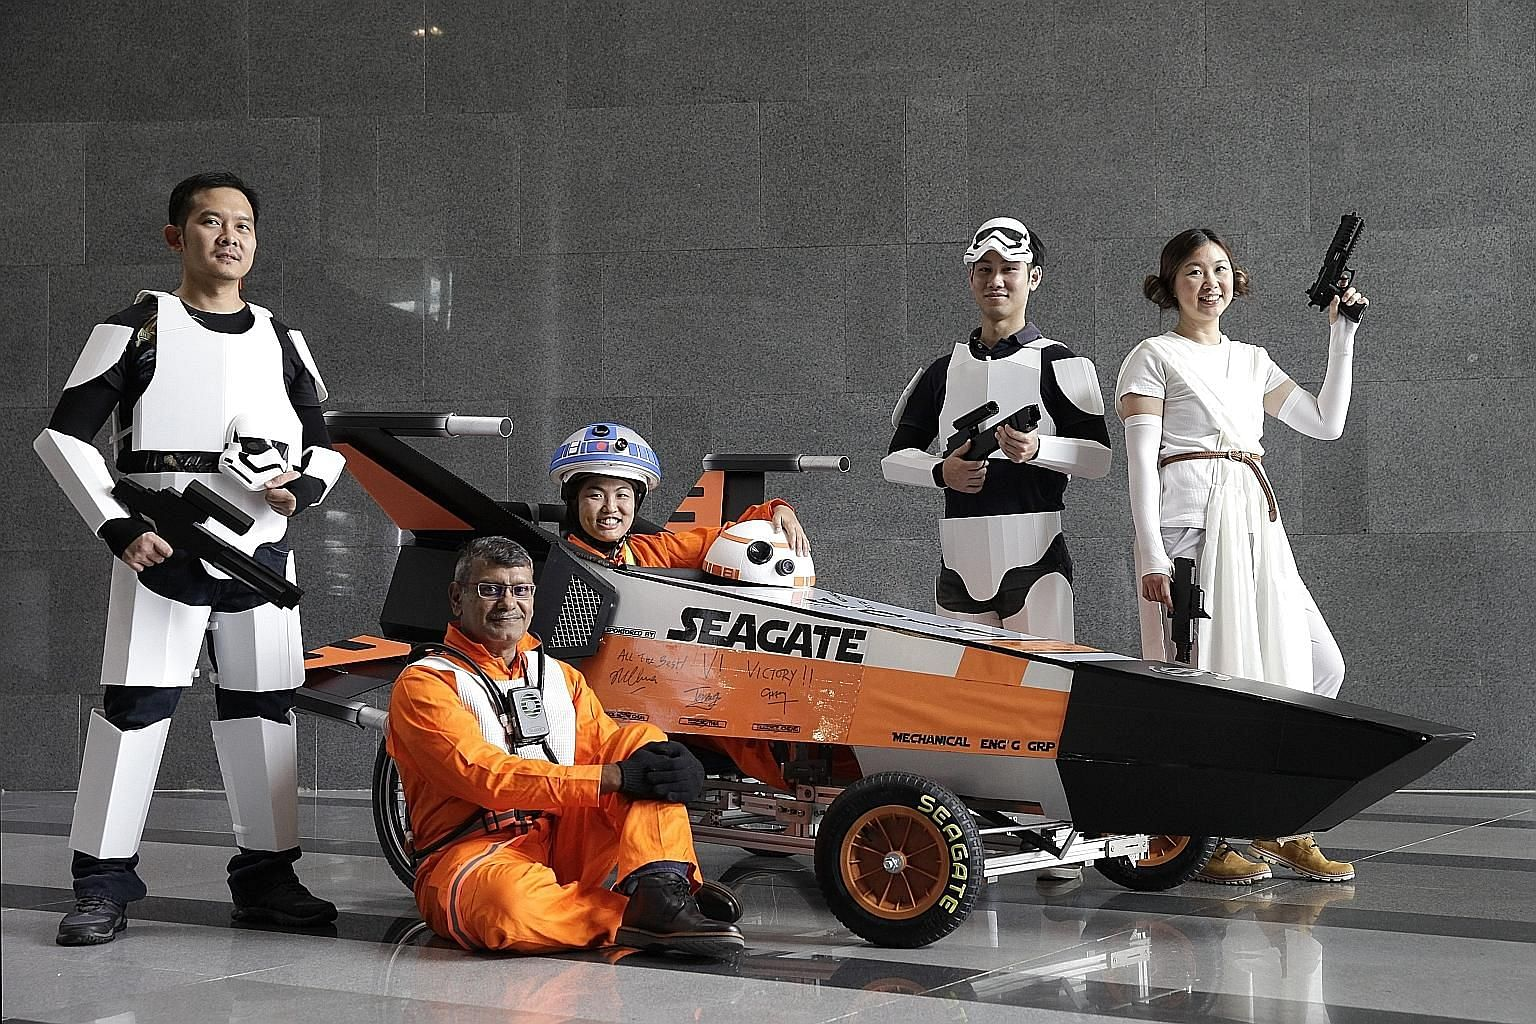 Yolo team members from Seagate Singapore Design Centre The Shugart, including (from far left) Henry Go, Xavier J. Paliath, Goh Sok Li, Win Yongrattana and Chong Sien Huay, modelled their soapbox racer after the Star Wars X-wing starfighter.